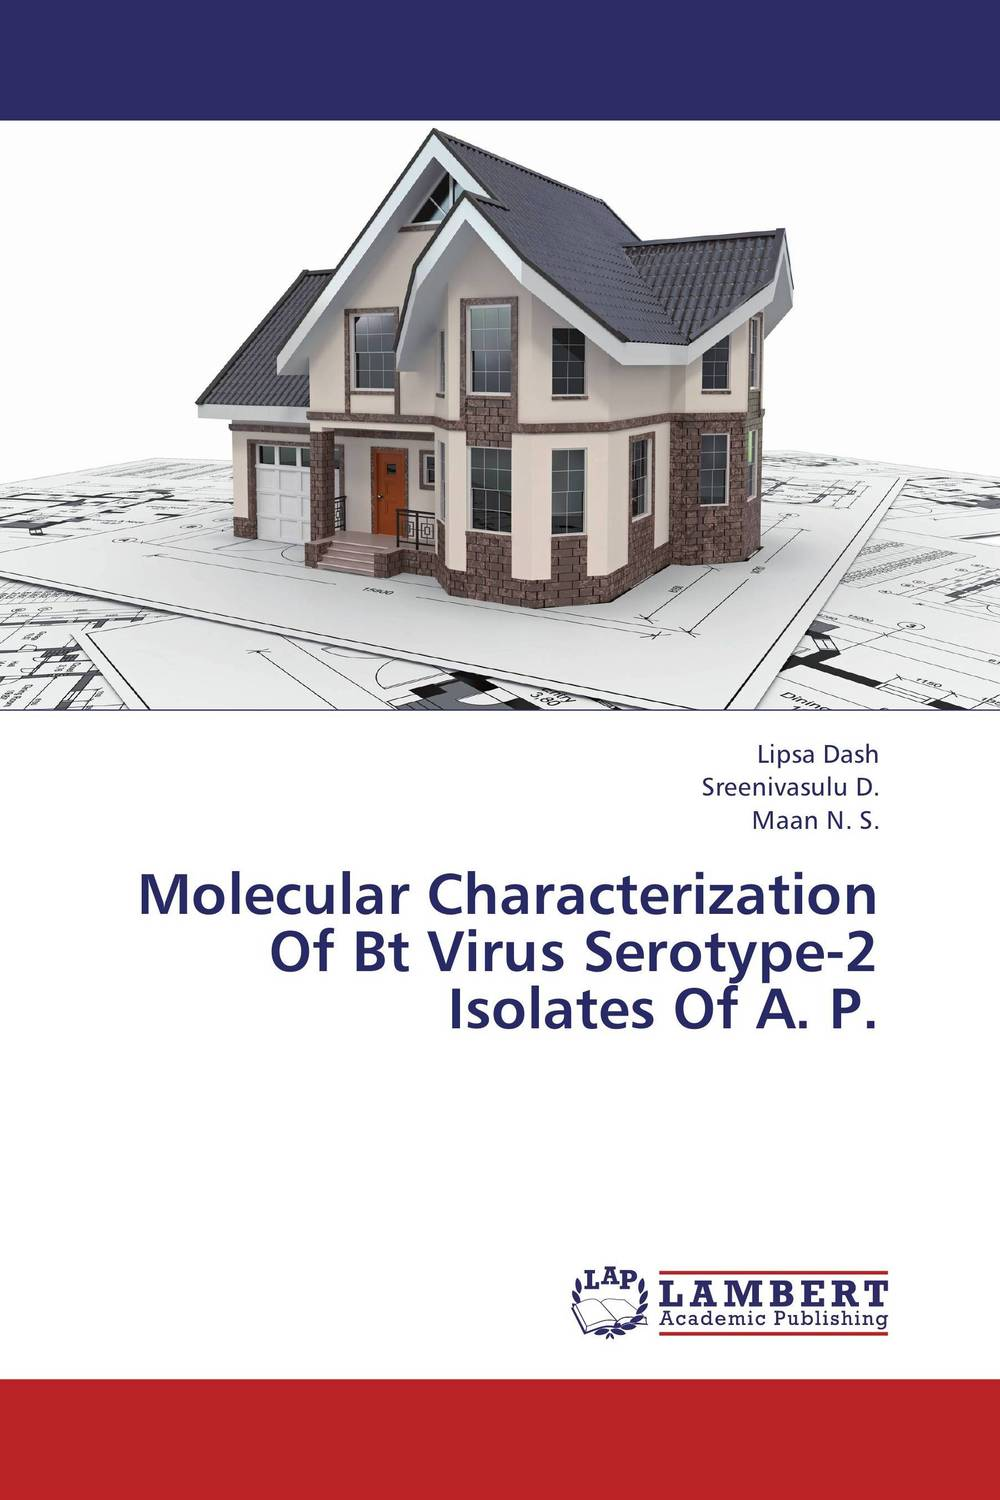 Molecular Characterization Of Bt Virus Serotype-2 Isolates Of A. P. jyoti yadav arvind kumar and lalit kumar molecular characterization of lactamase e coli and klebsiella spp